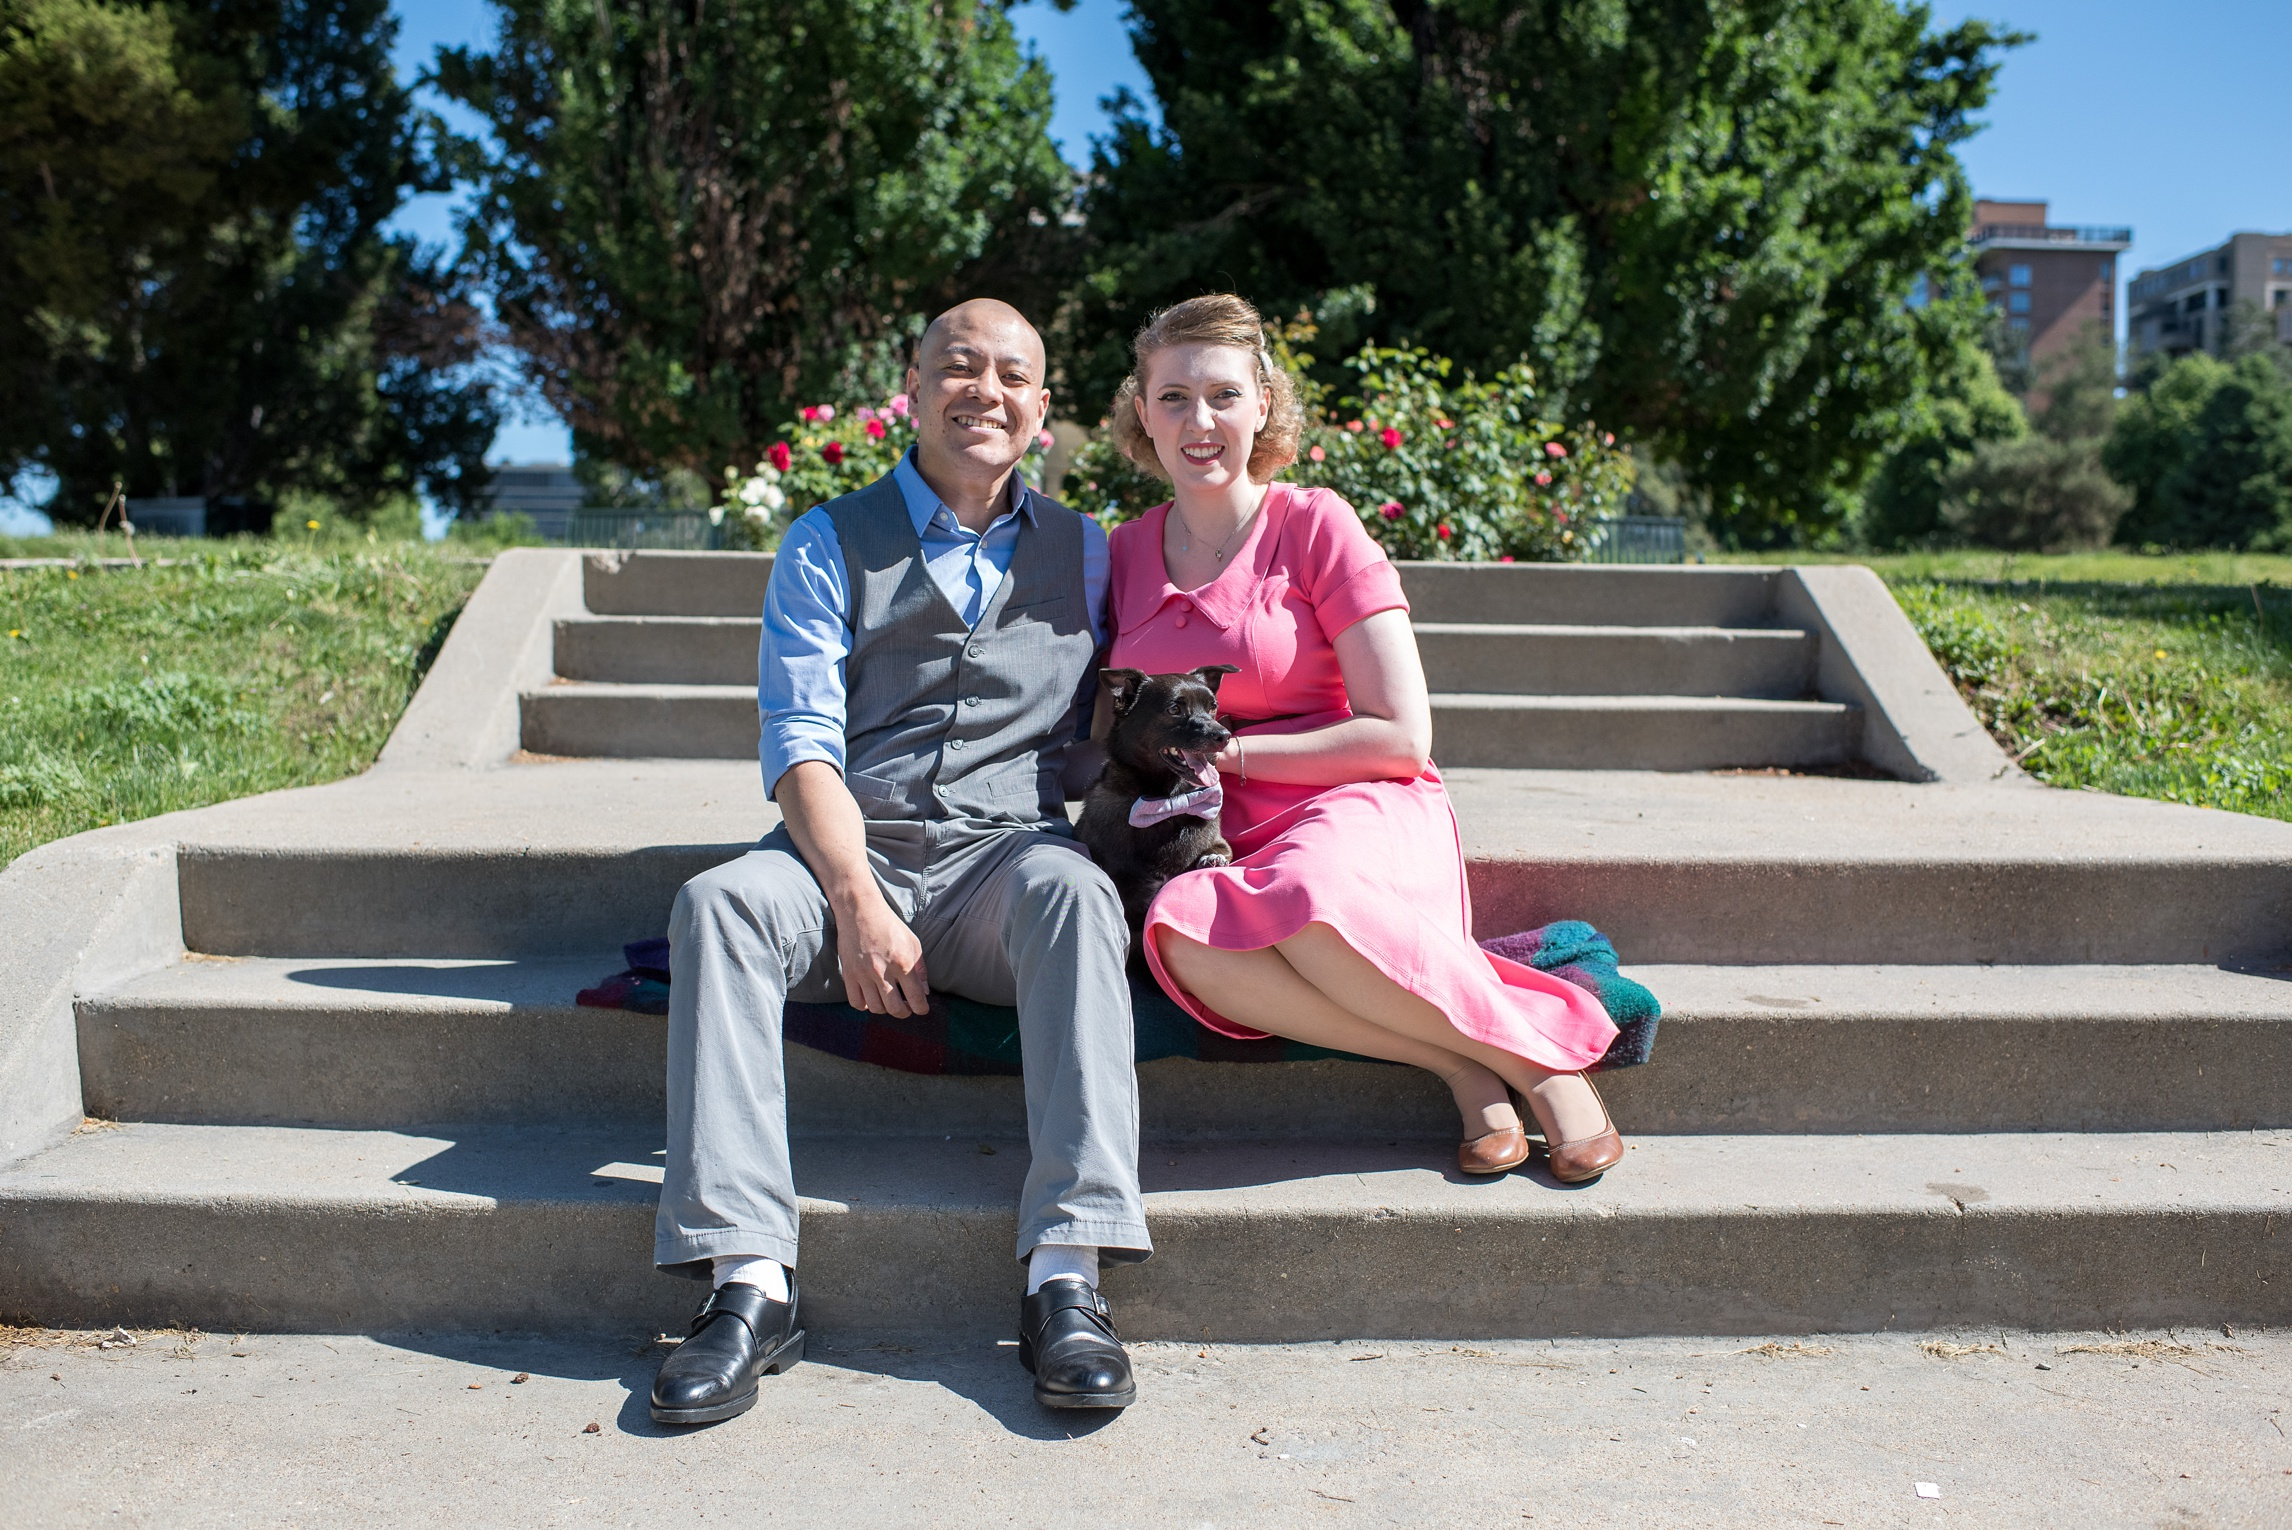 A cute engaged couple with their dog at Cheesman Park in Denver, Colorado. Engagement photography by Sonja Salzburg of Sonja K Photography.